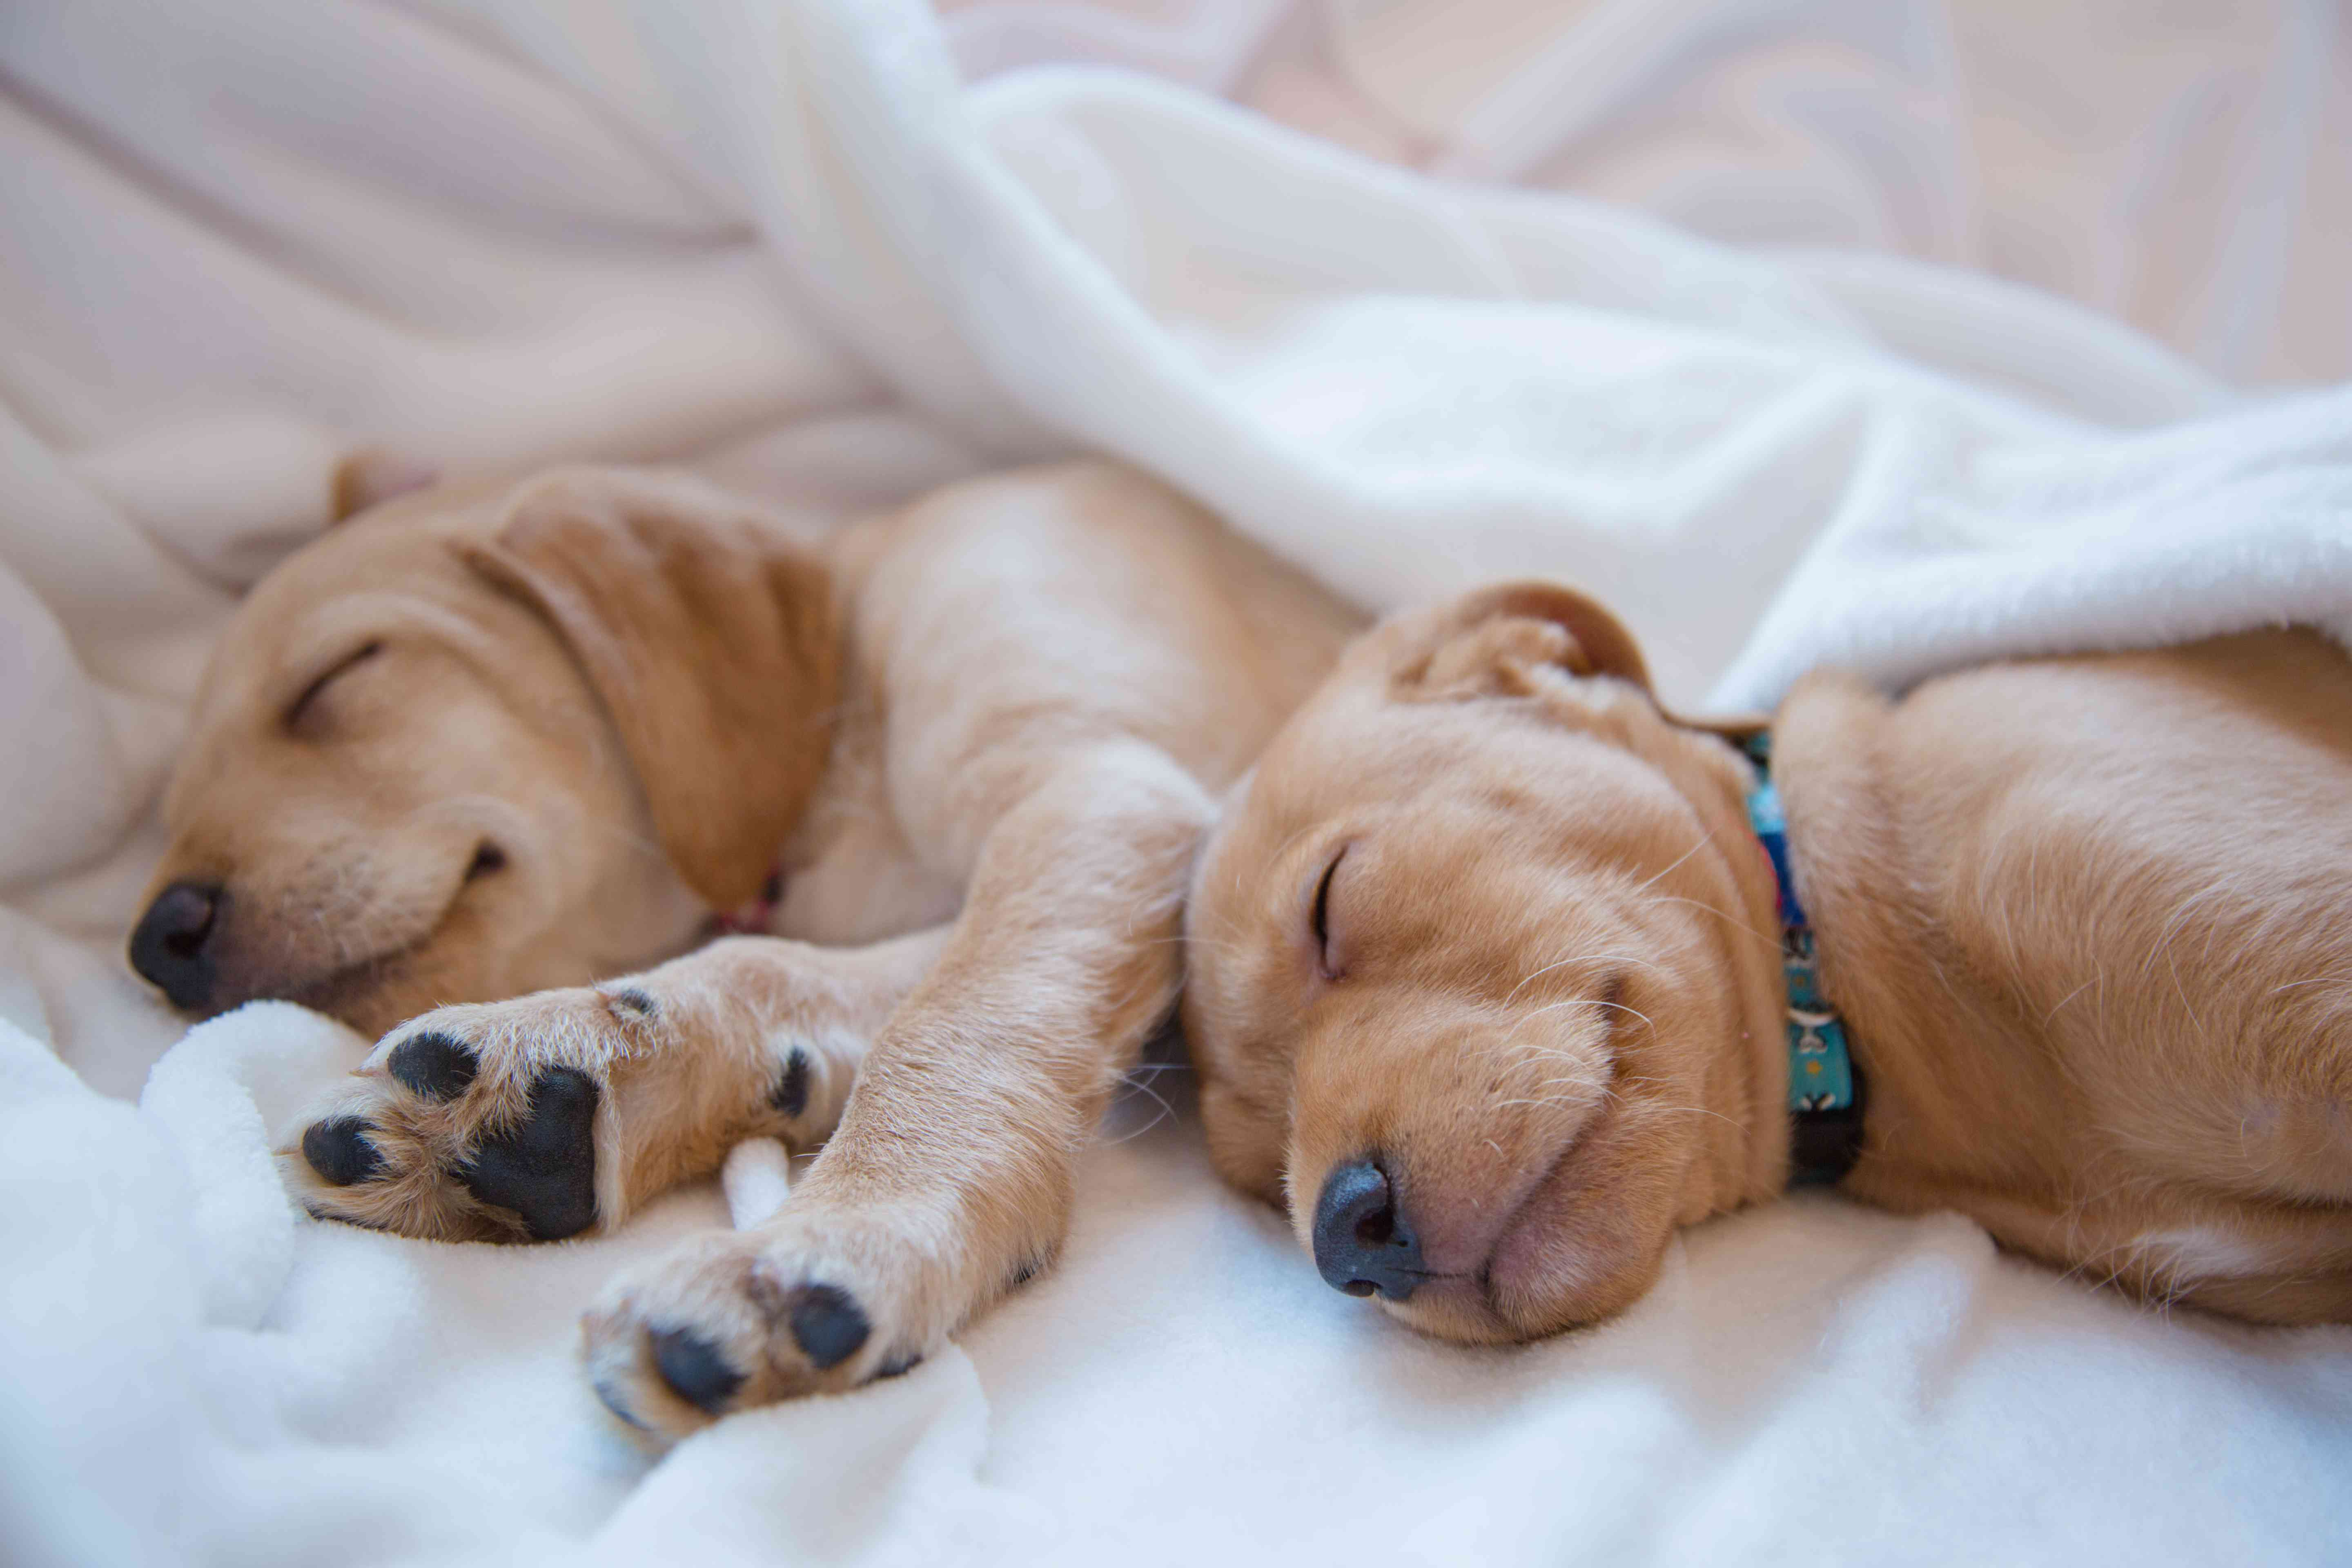 two puppies sleeping together in bed